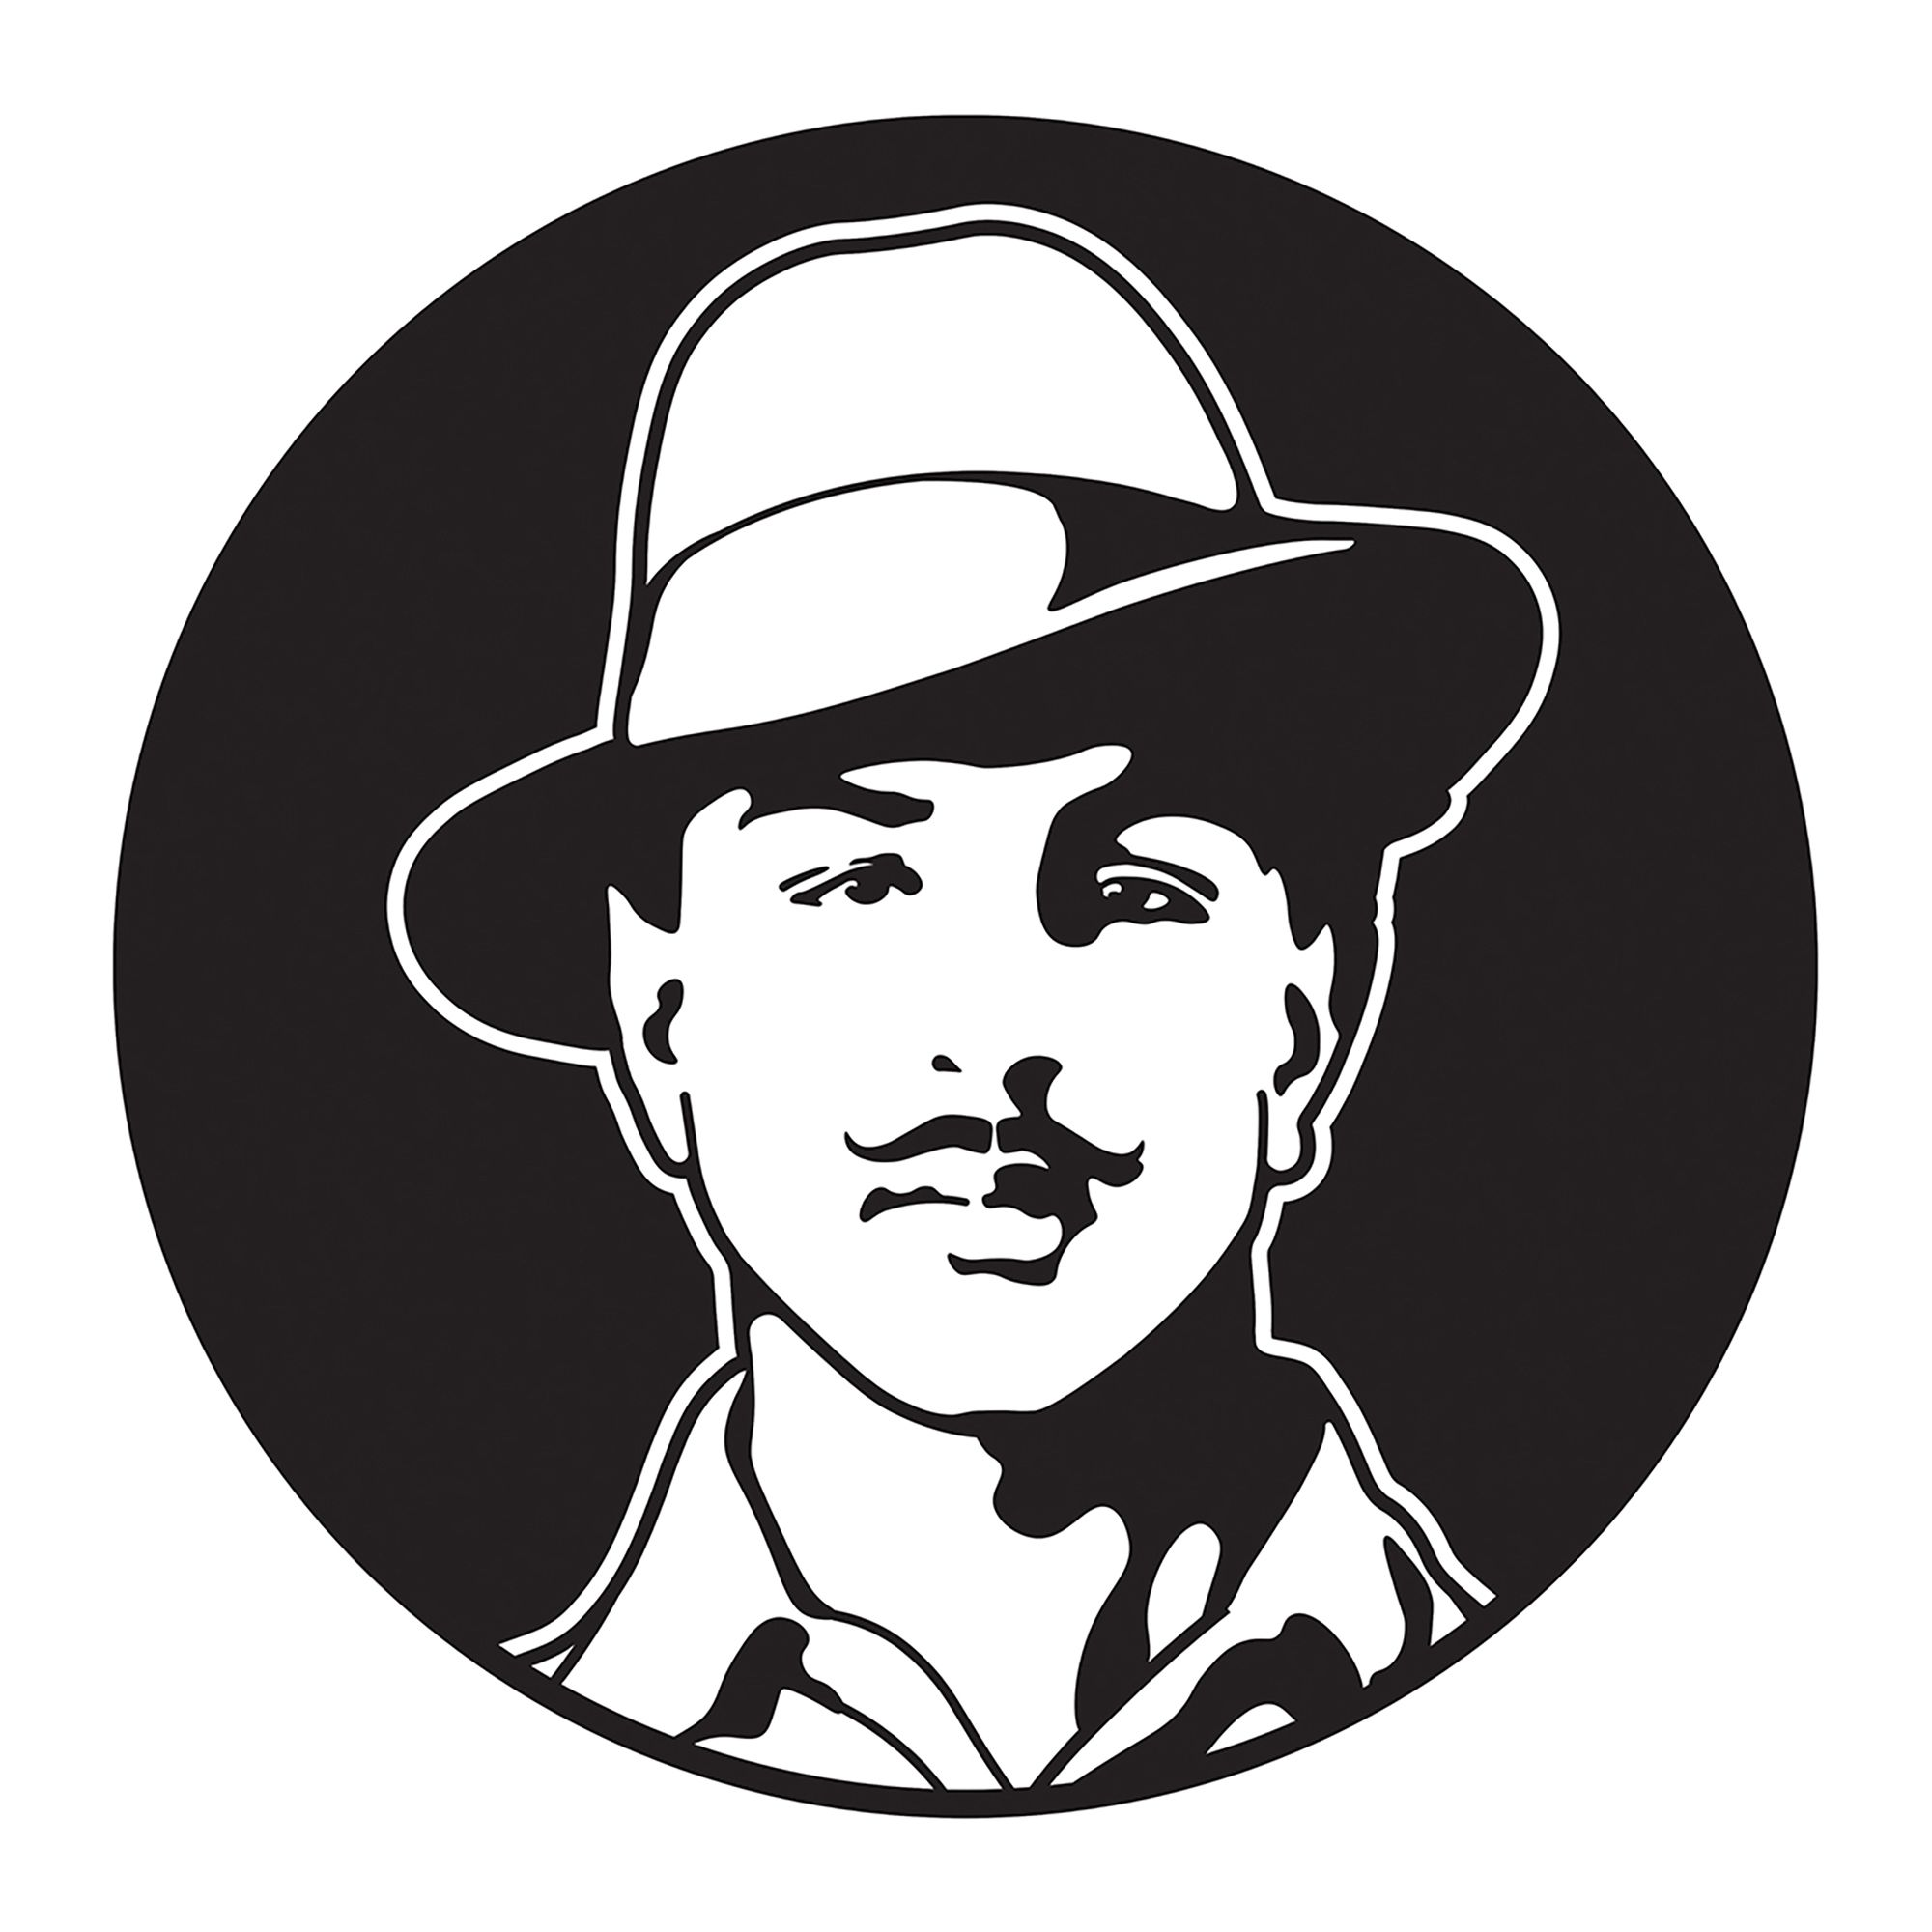 Bhagat singh was an indian revolutionary socialist who was influential in the indian independence movement